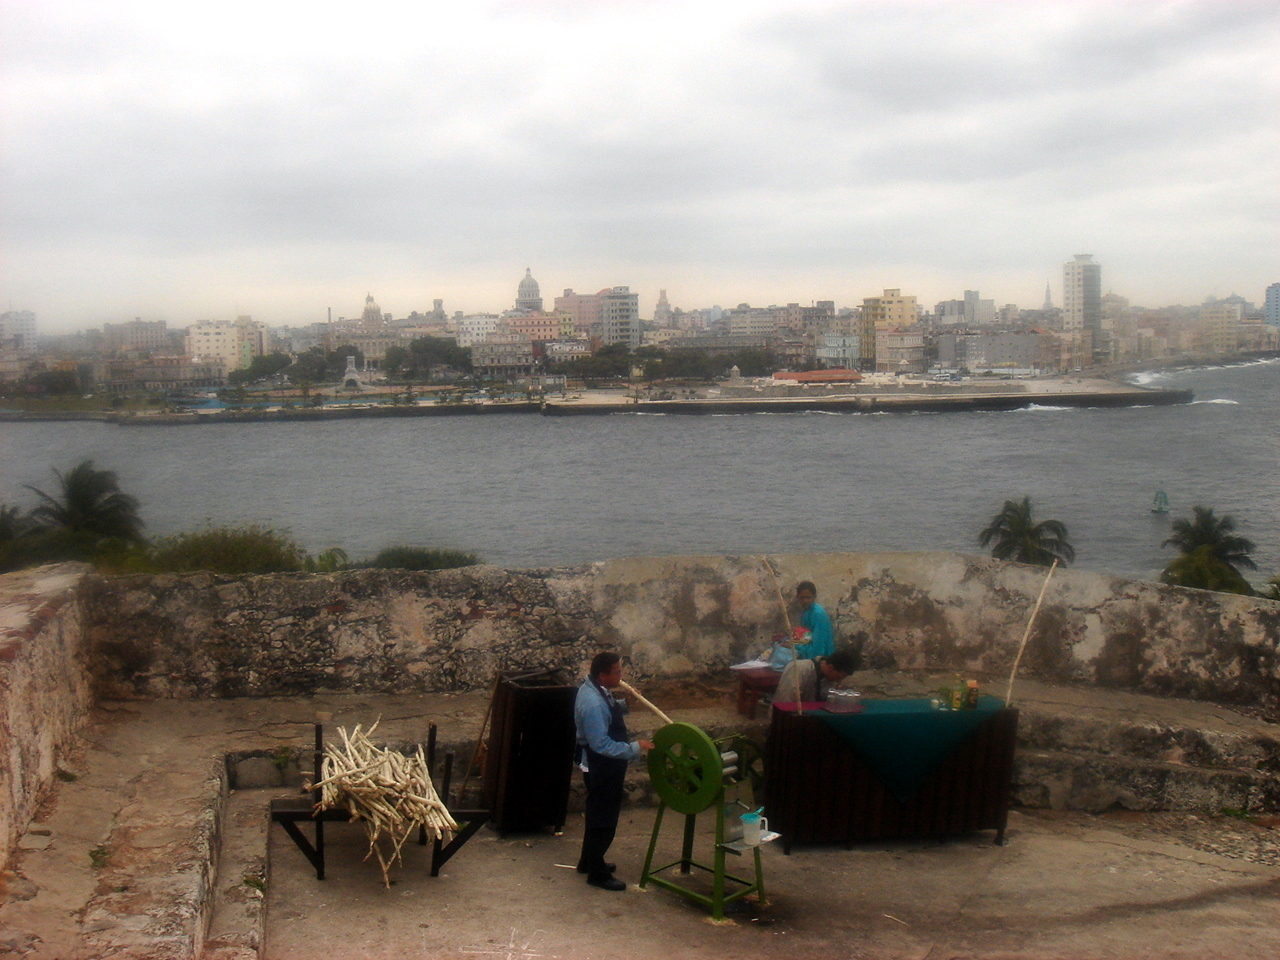 sugar cane juice-making at the old Fort, with Habana in the distance